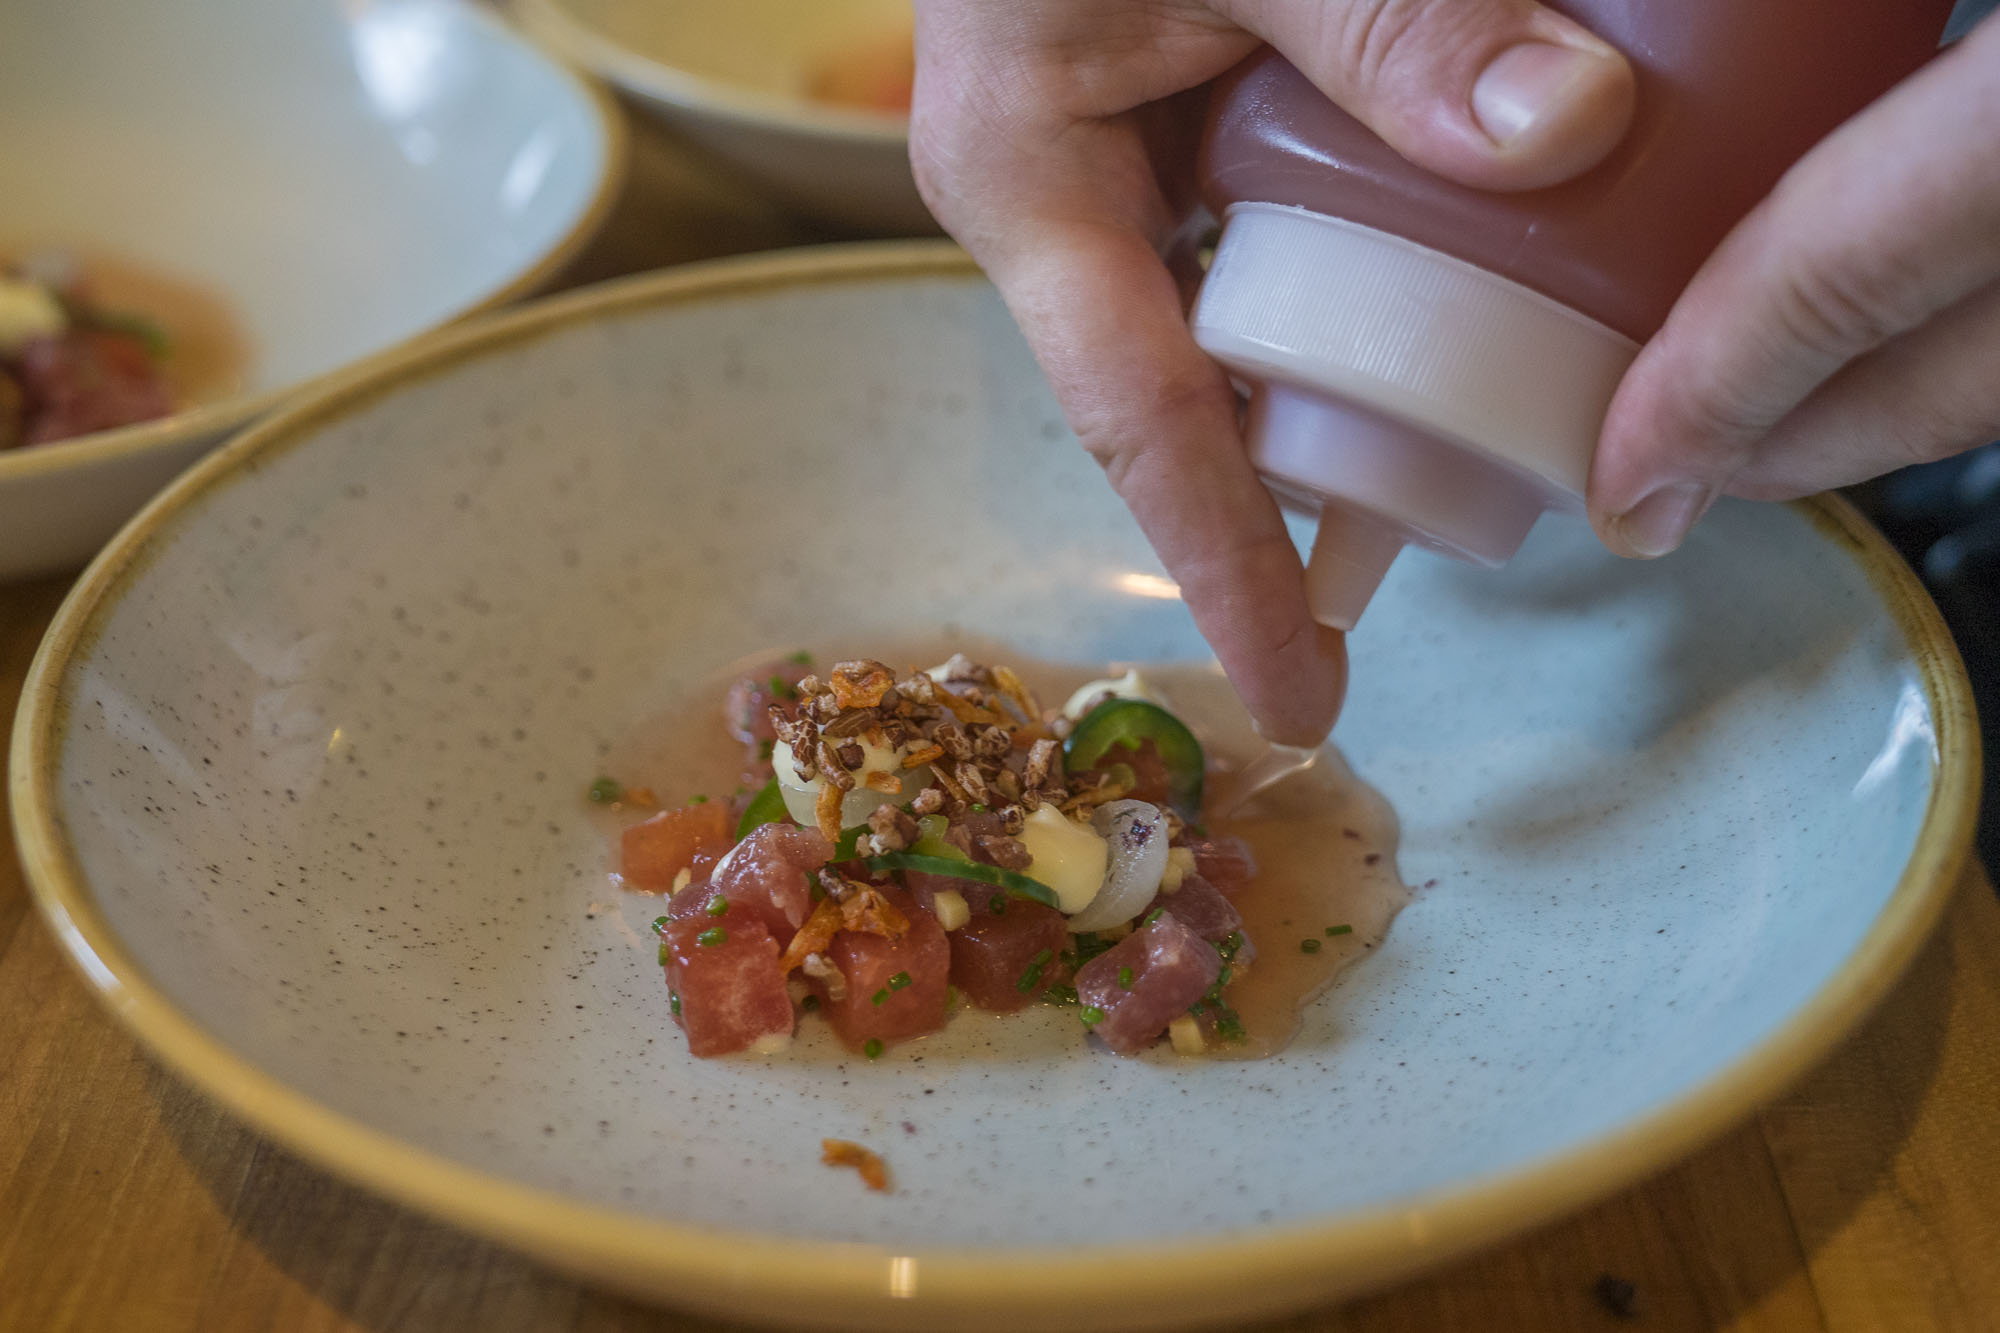 hand drizziling sauce on top of finished dish